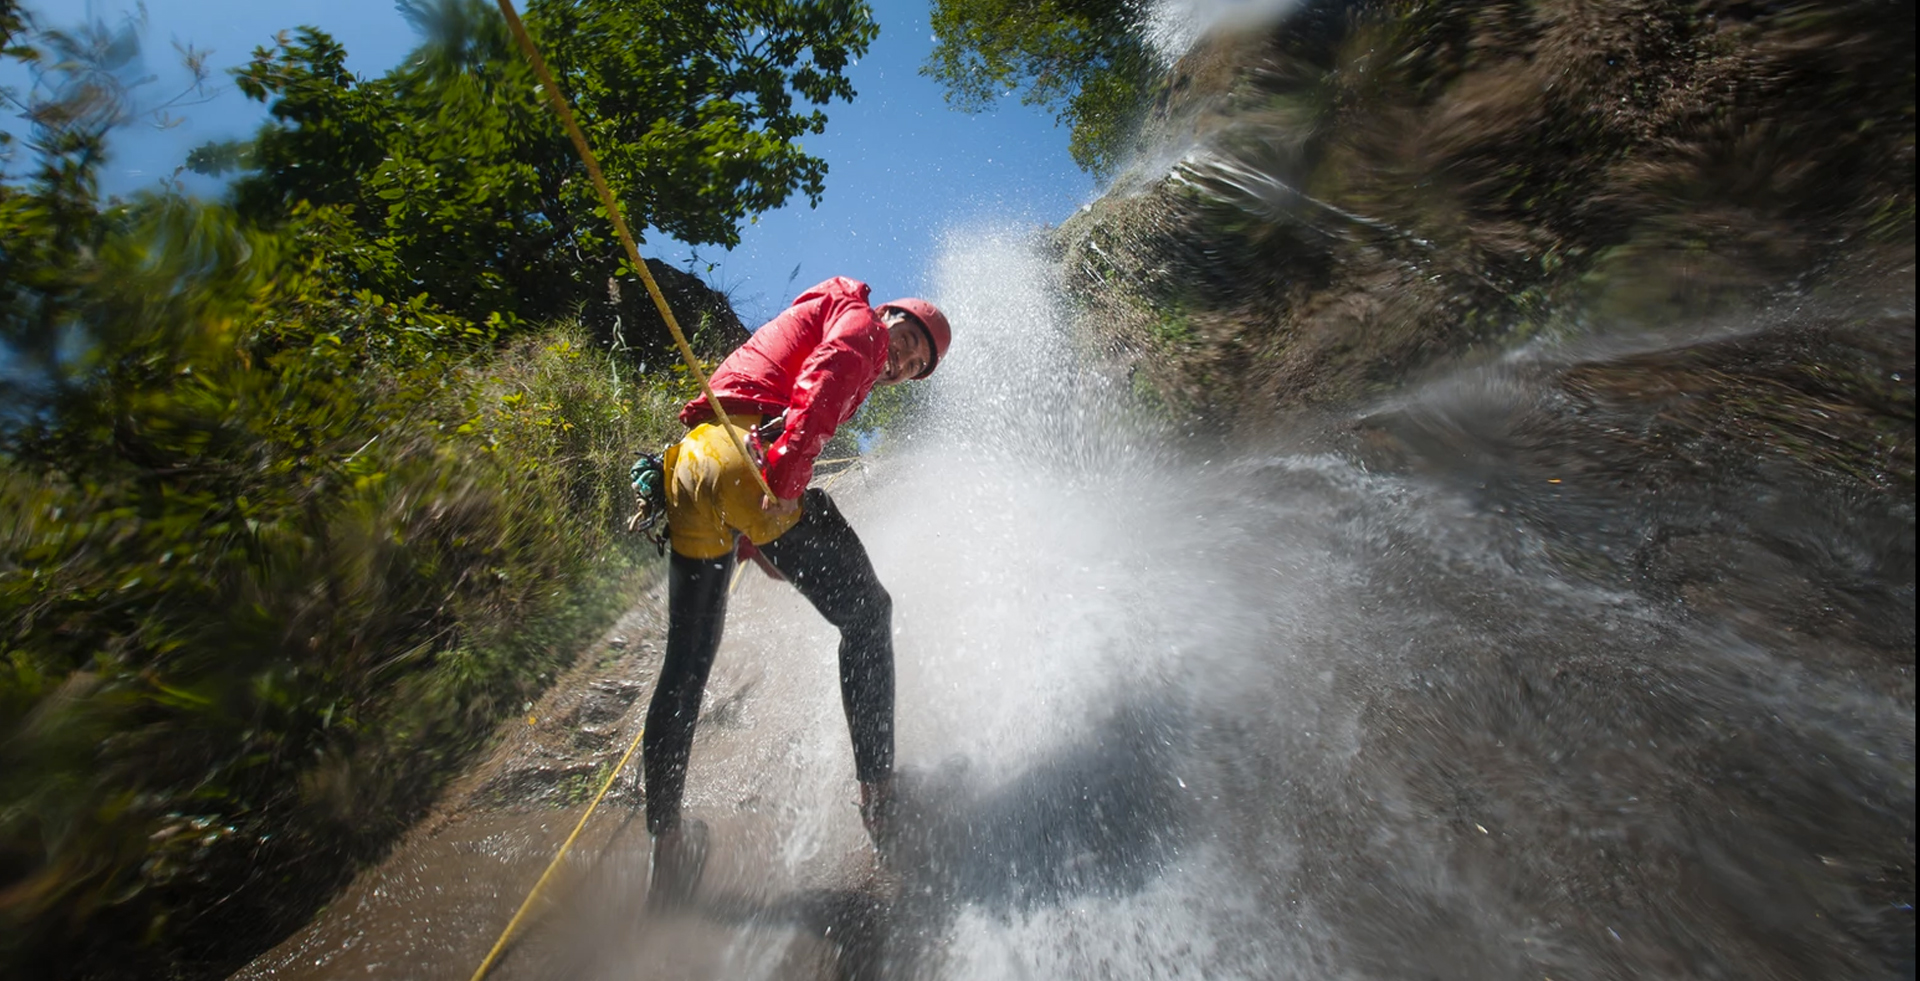 Man repelling down with a rope from a waterfall